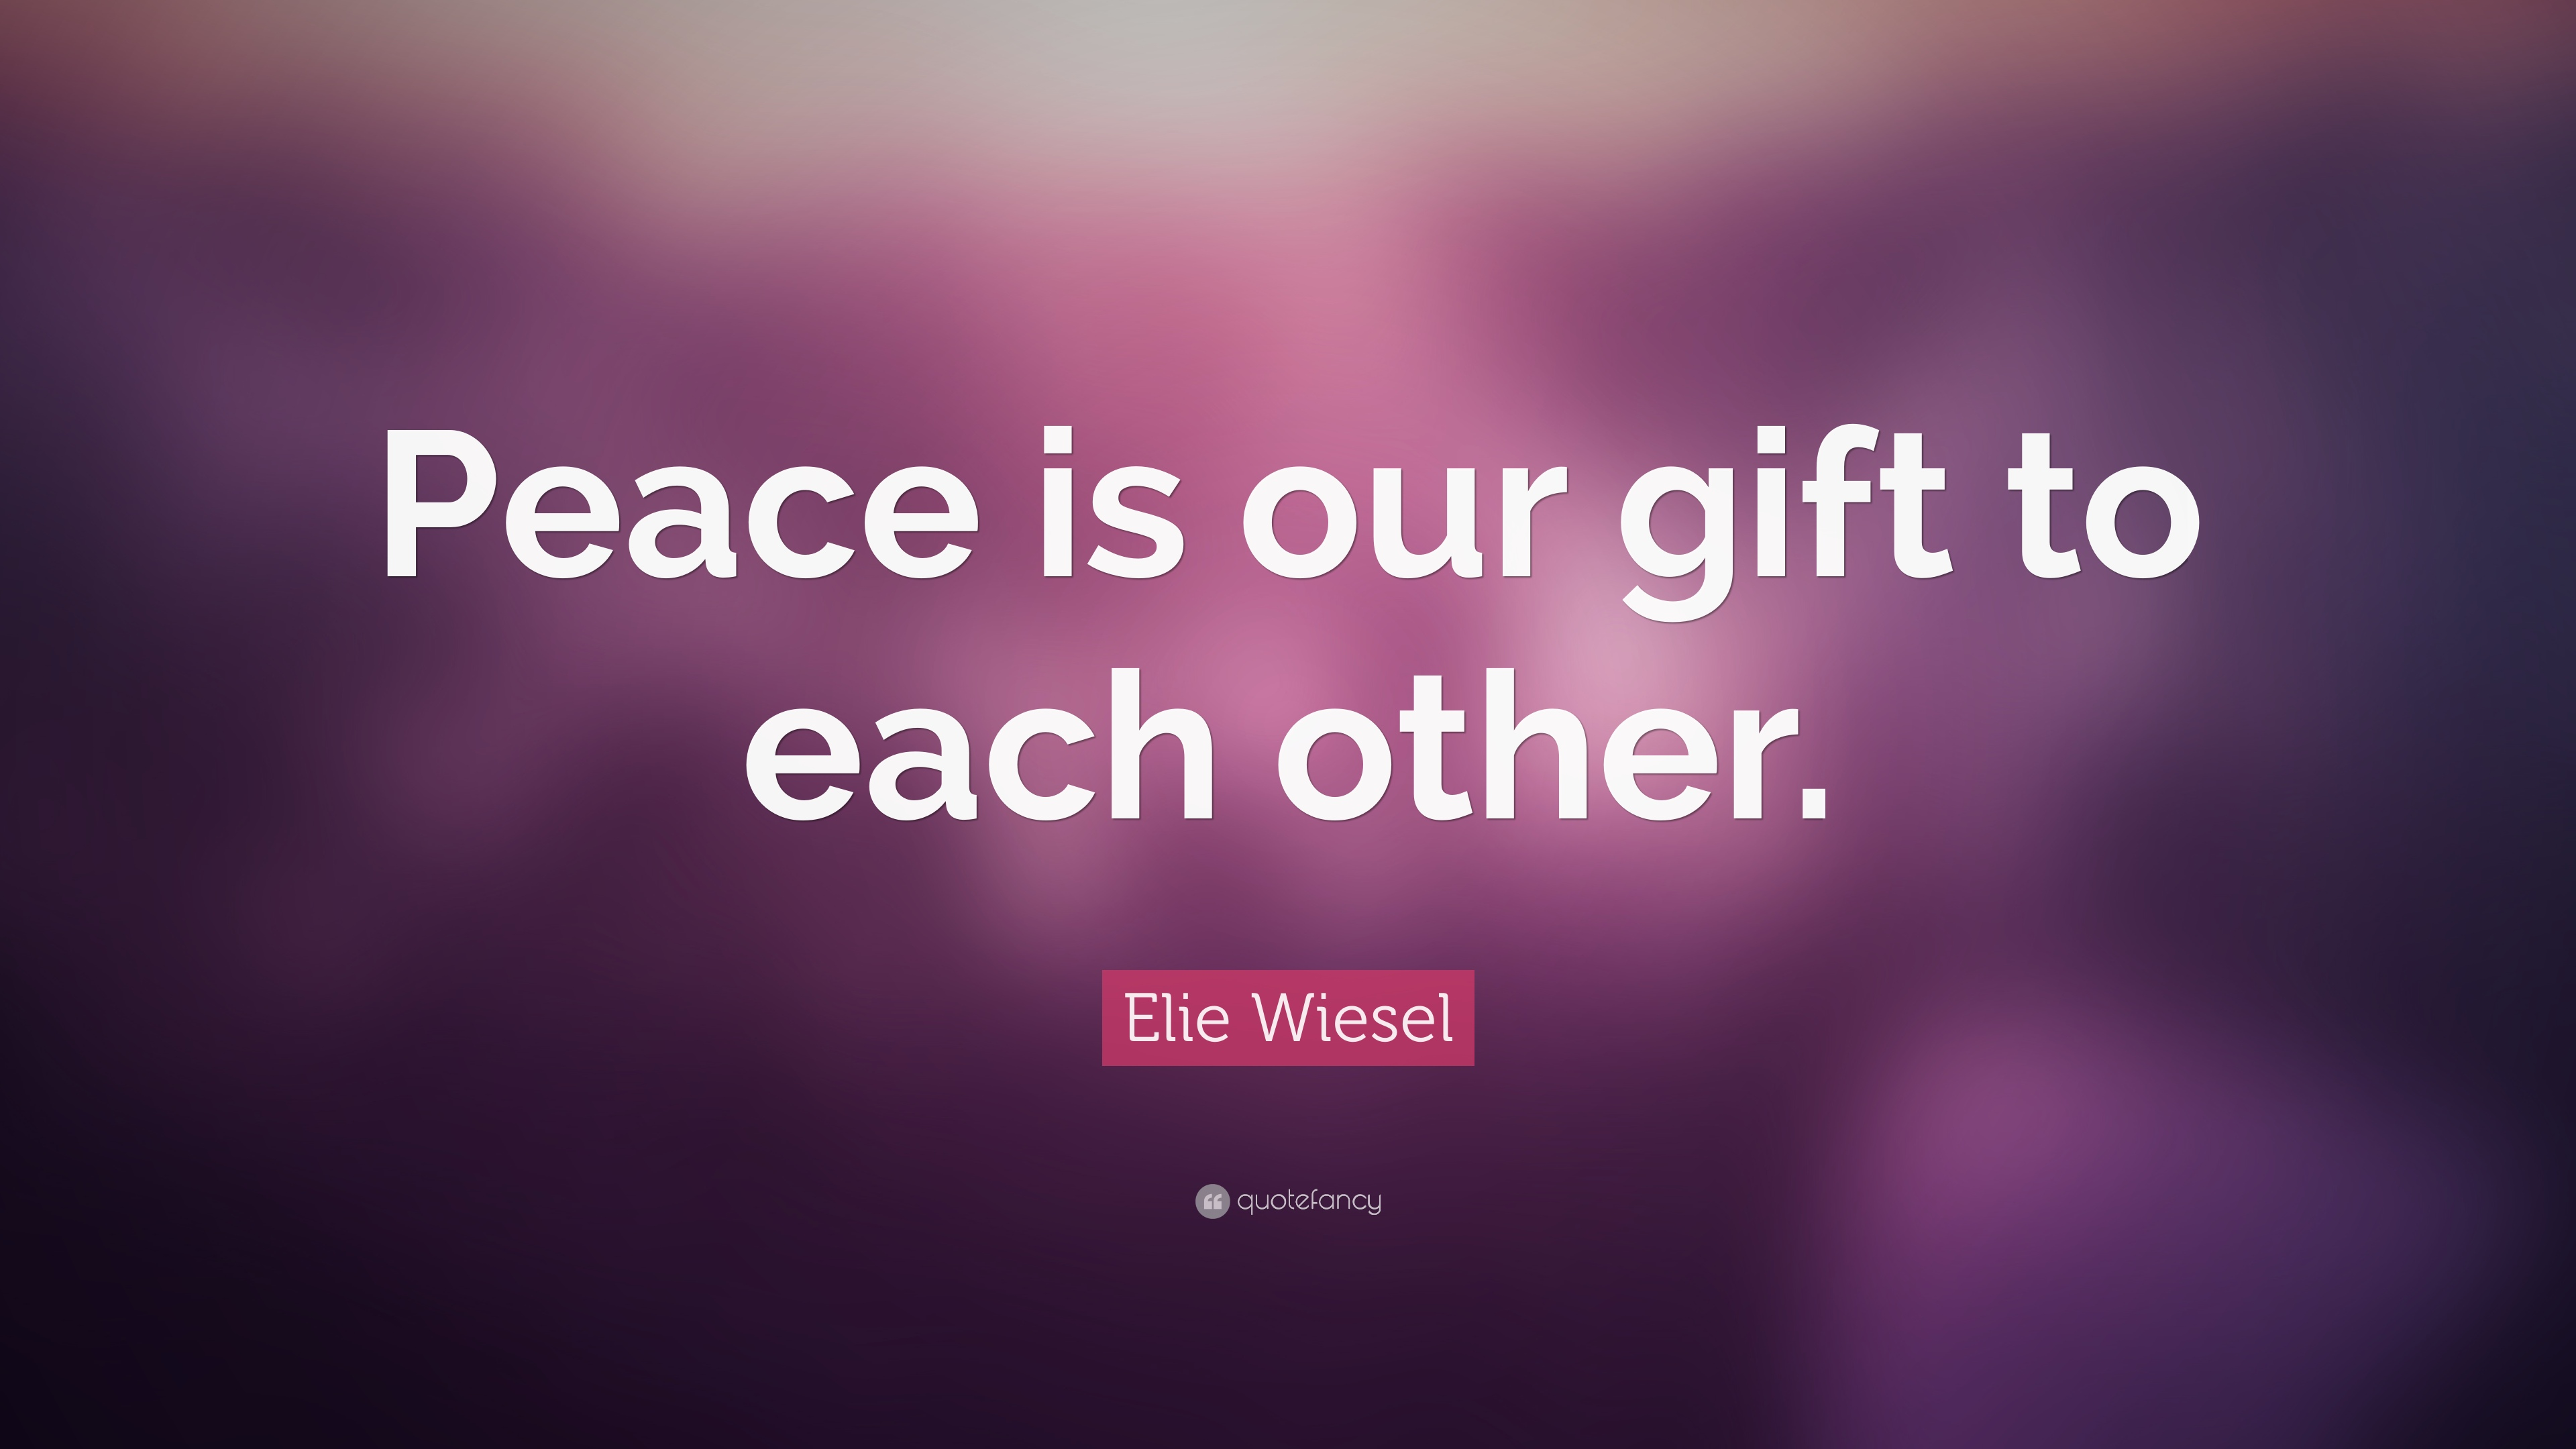 Quotes About Peace Elie Wiesel Quotes 58 Wallpapers  Quotefancy